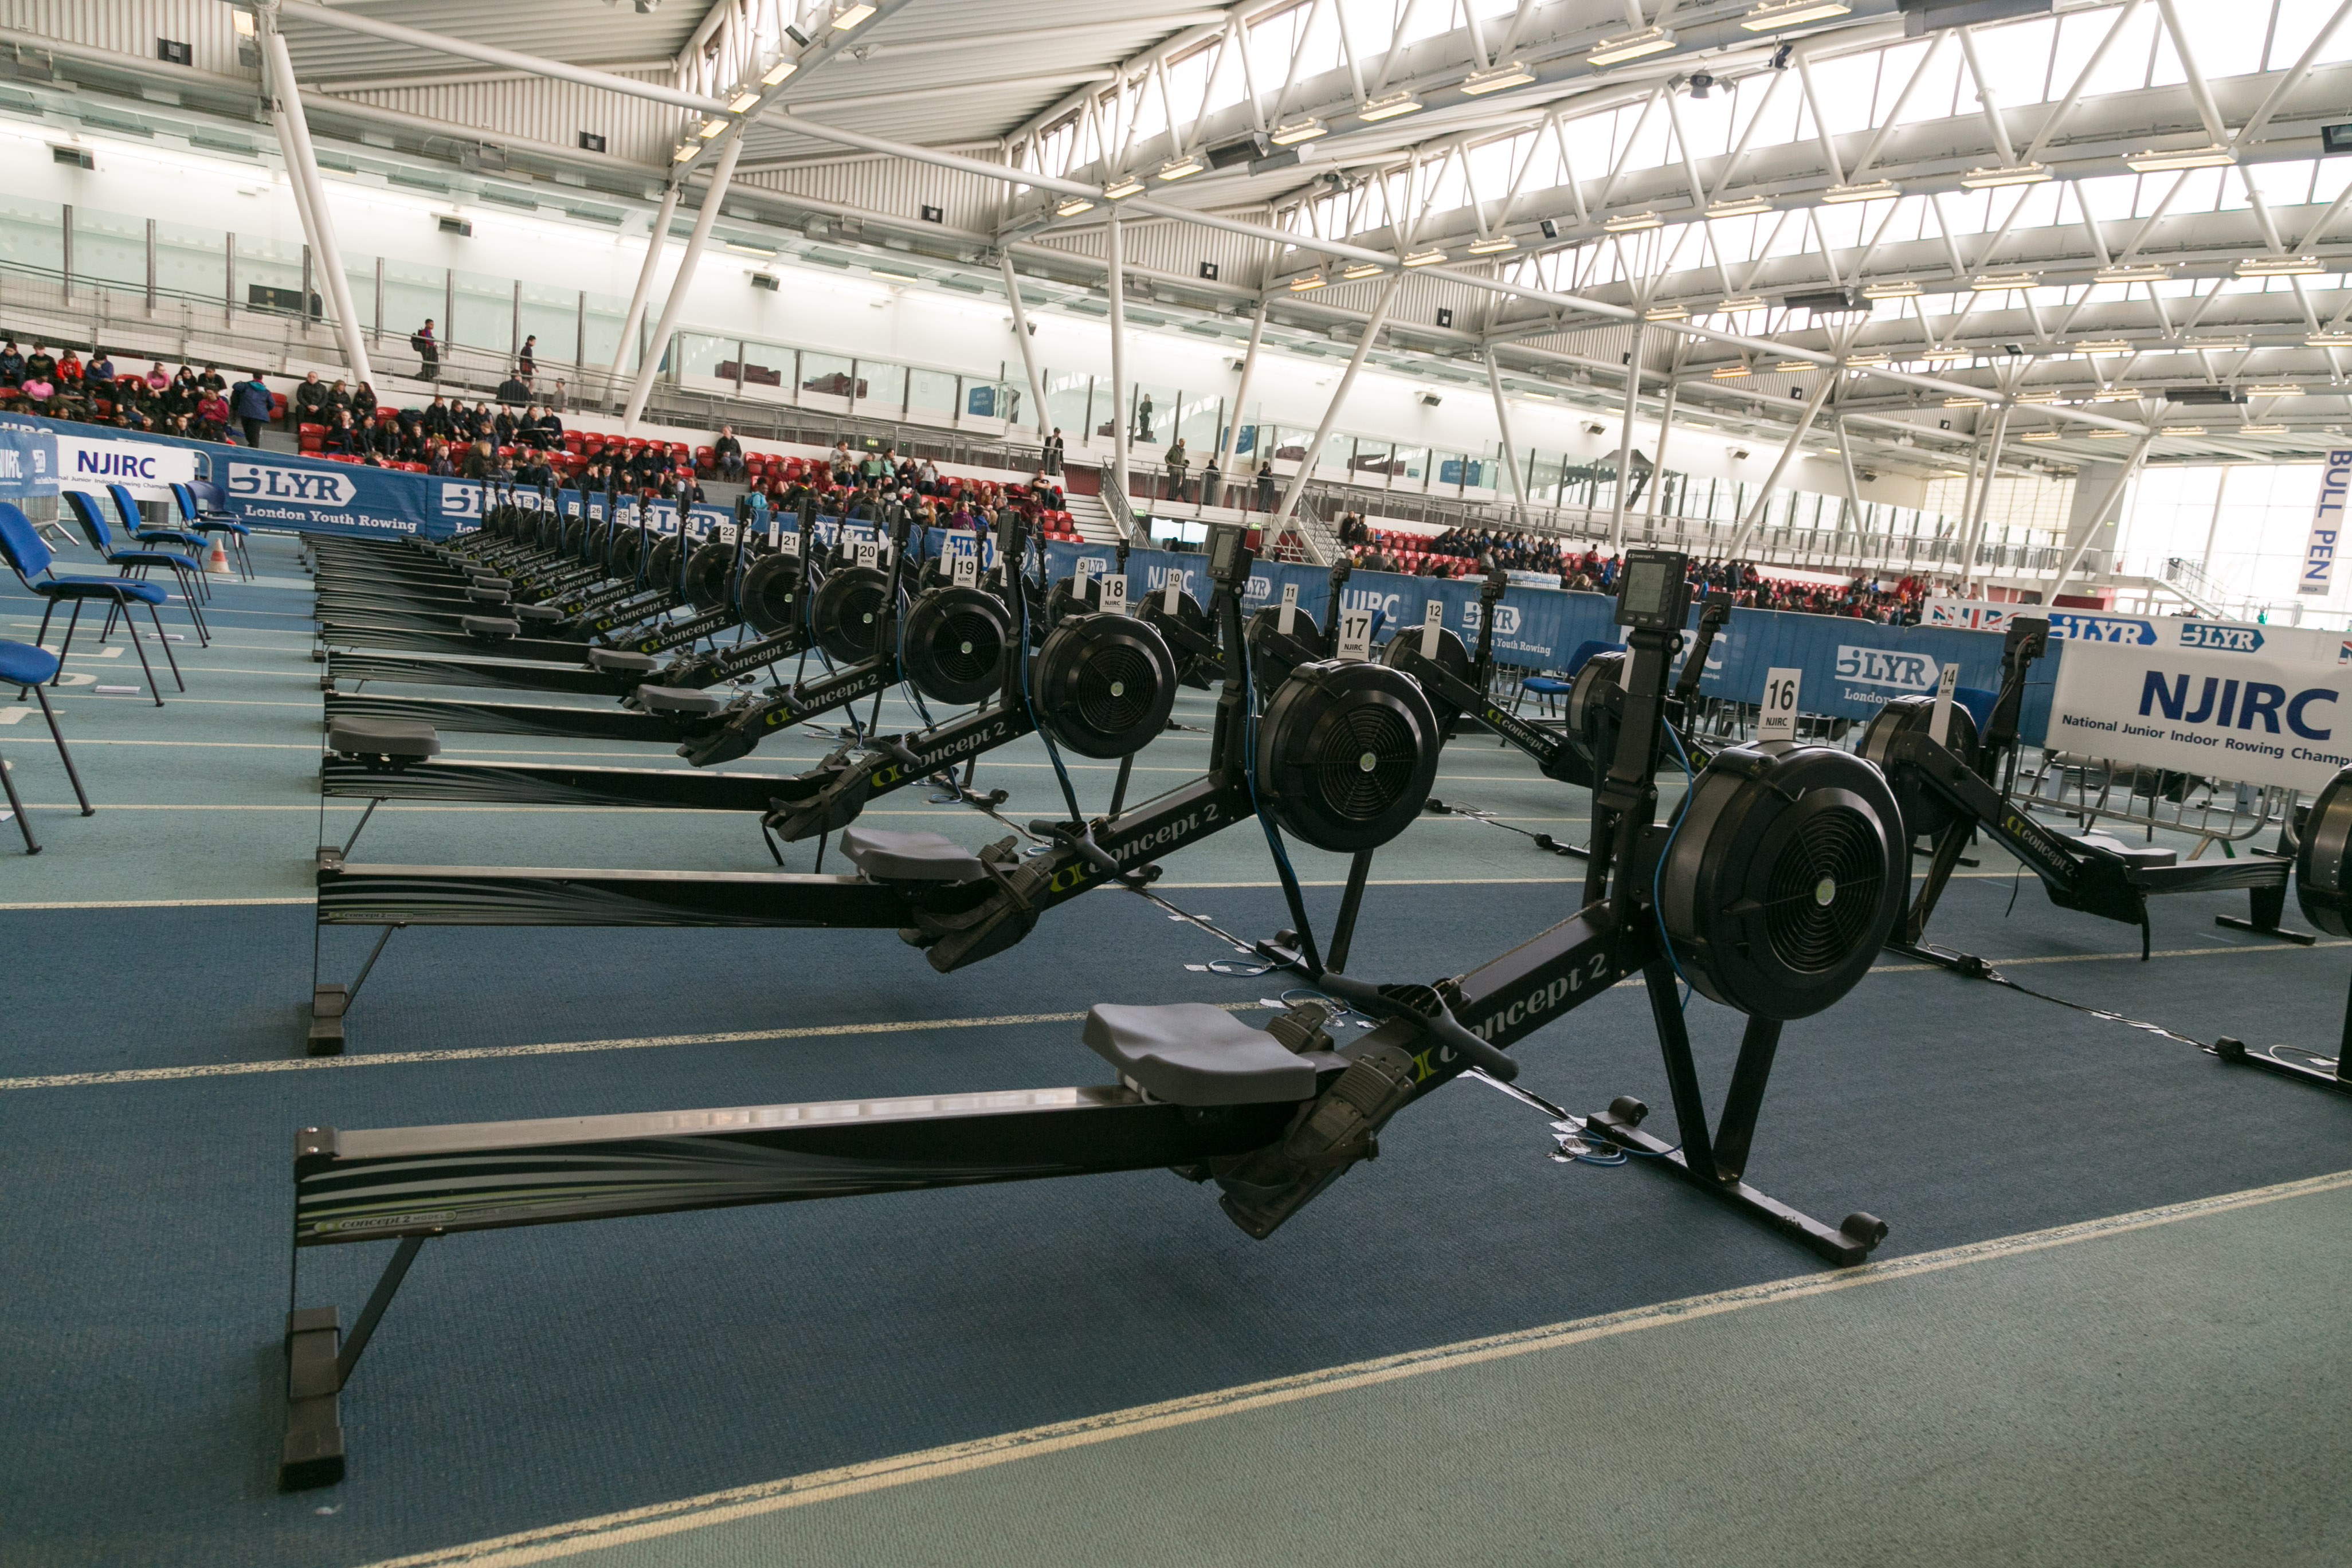 FOR SALE: BRAND NEW DISCOUNT ROWING MACHINES